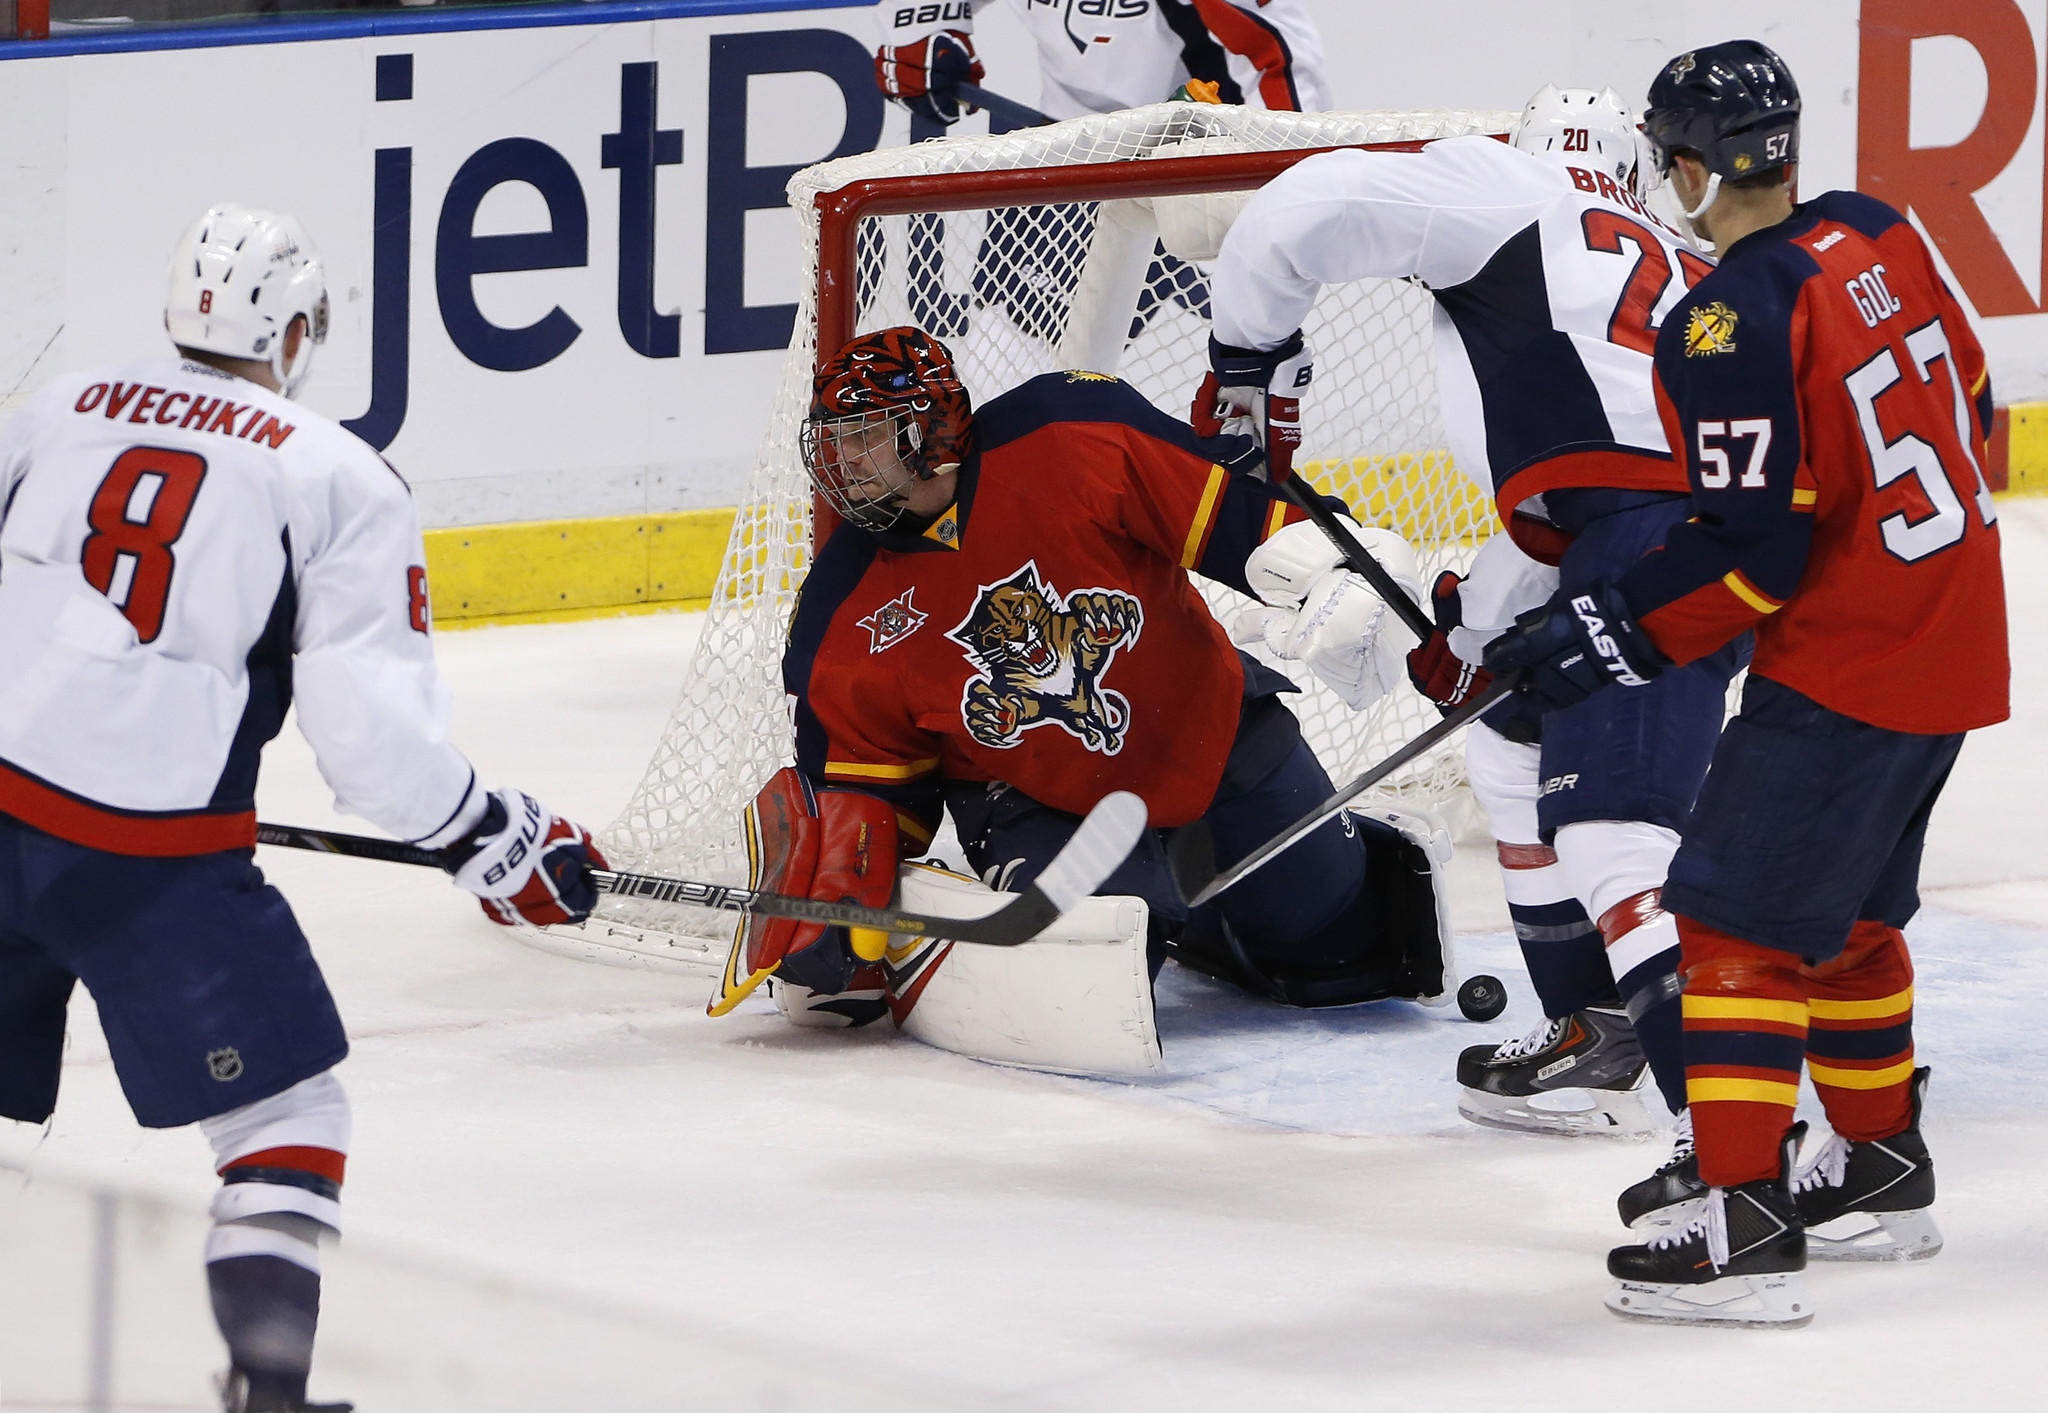 Washington Capitals right wing Troy Brouwer (20) scores a goal against Florida Panthers goalie Tim Thomas.